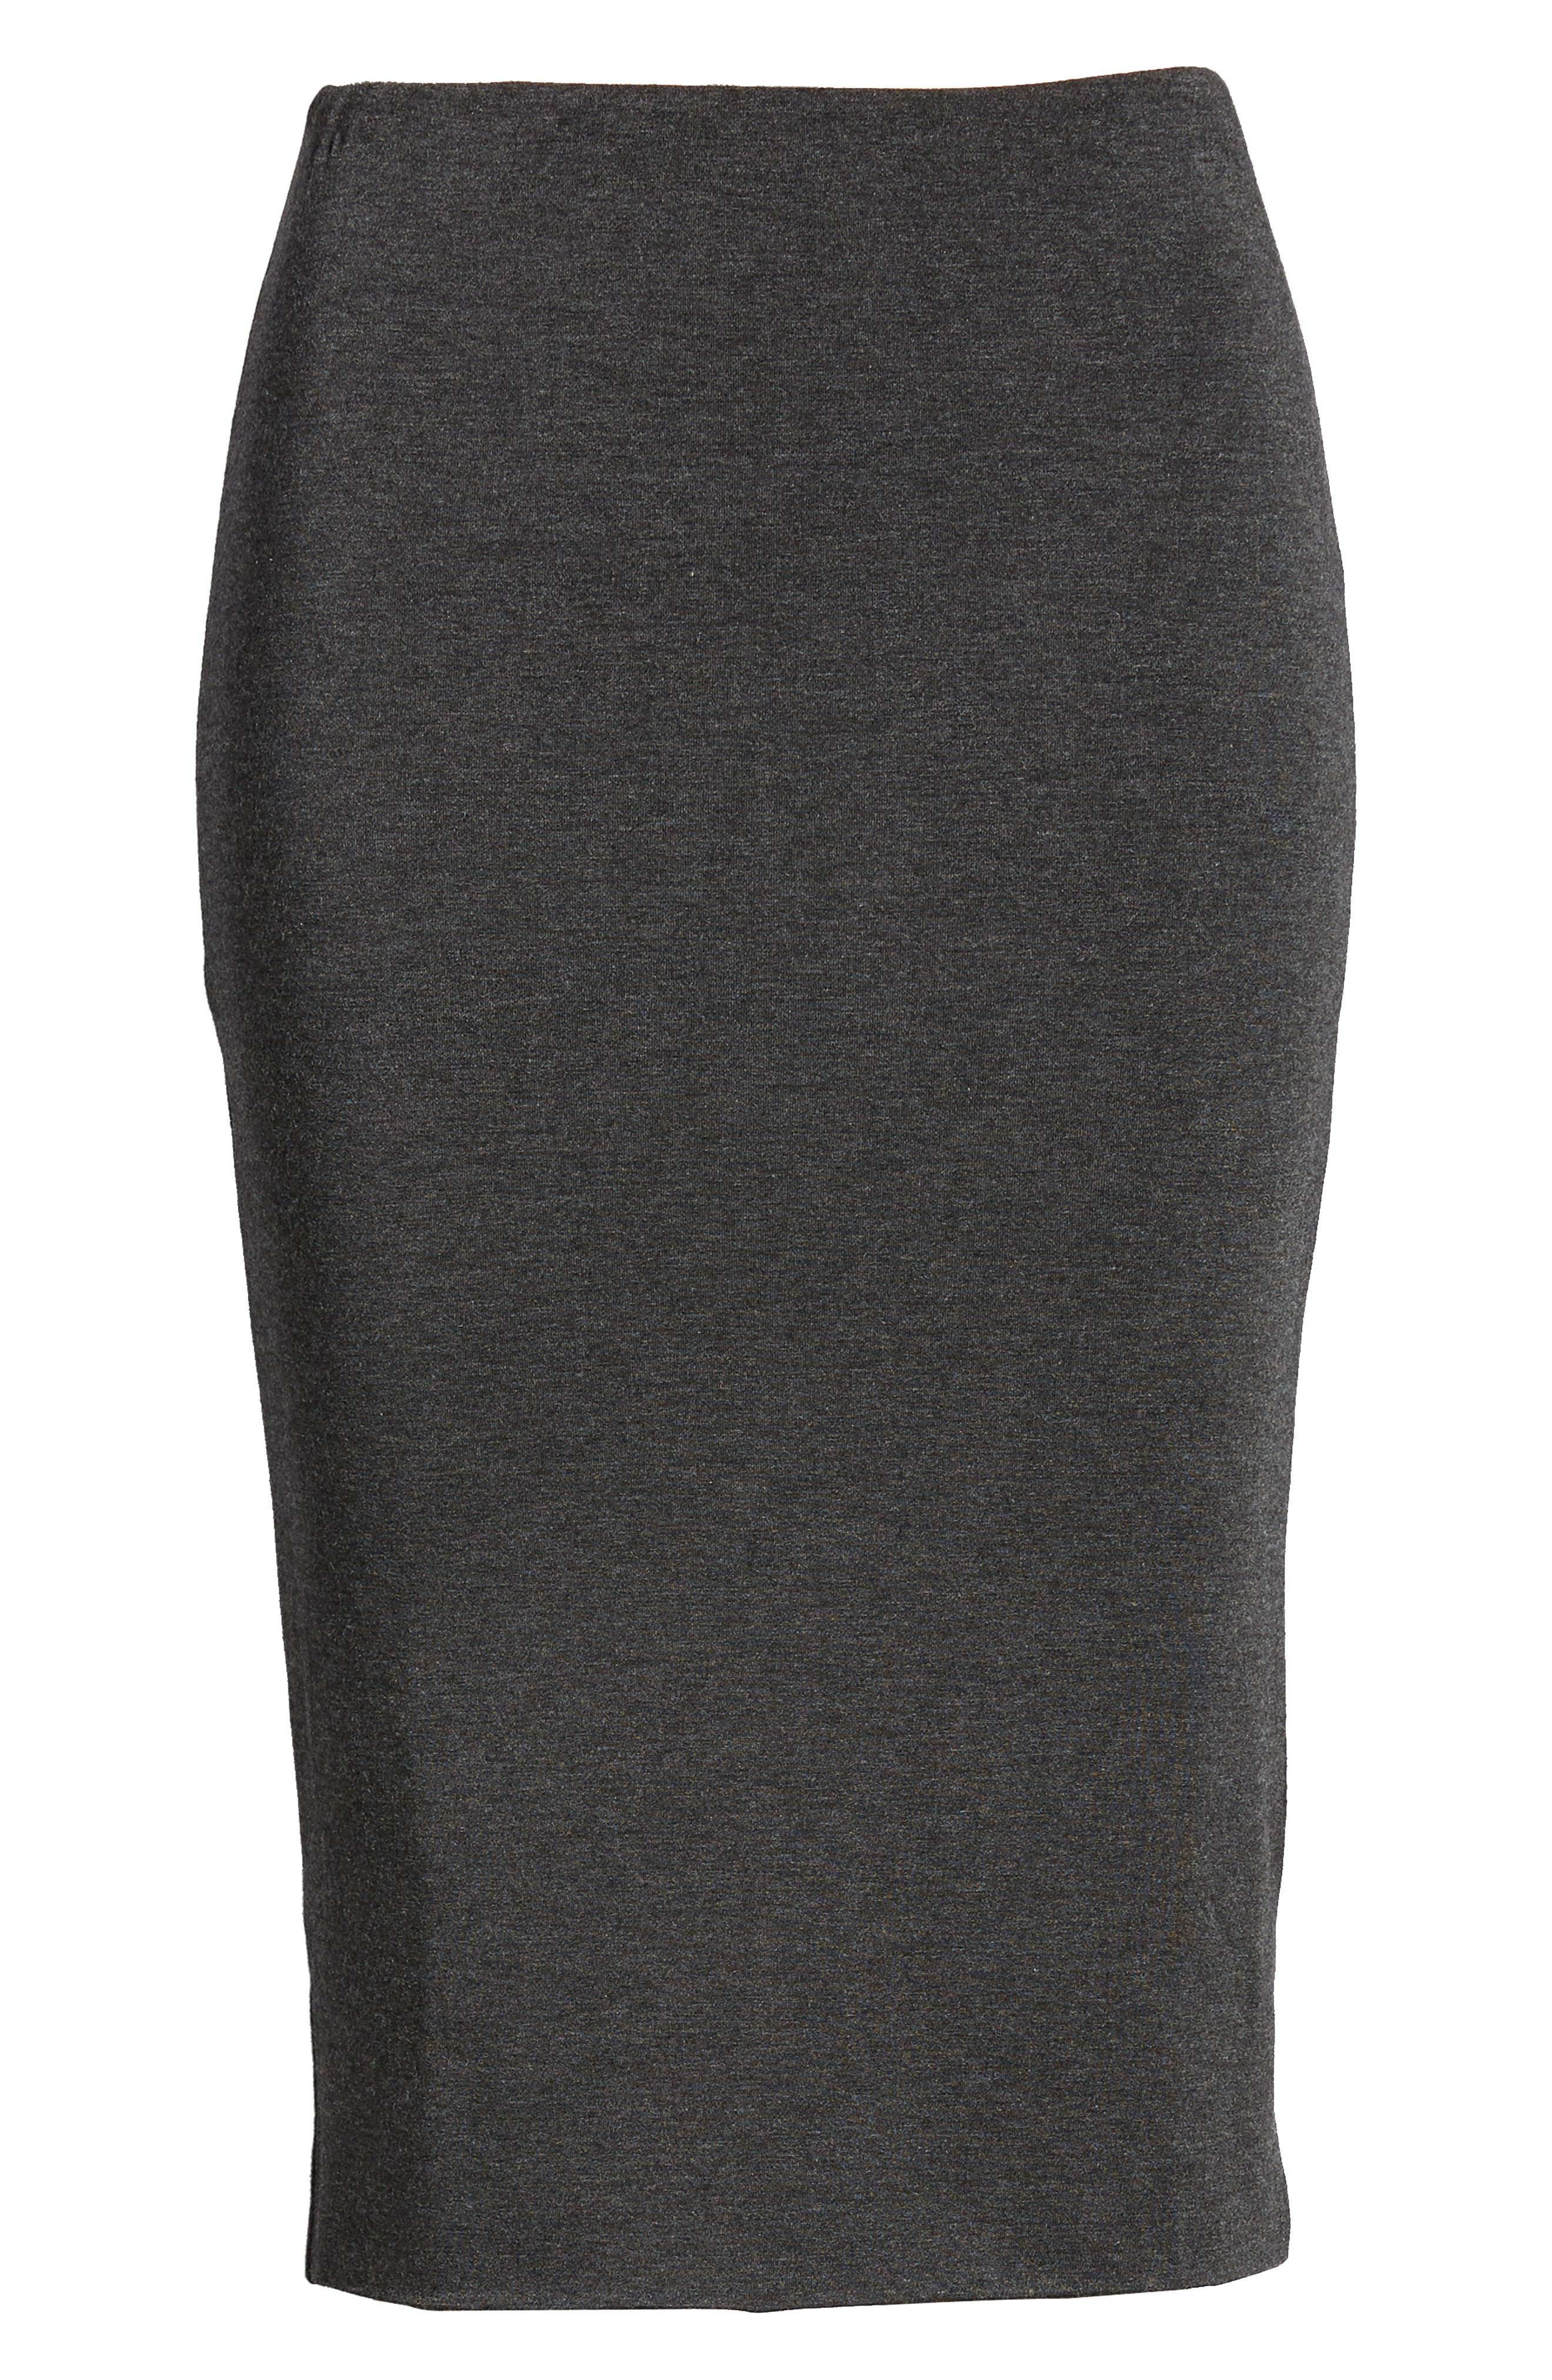 AMOUR VERT, 'Yuma' Stretch Knit Skirt, Alternate thumbnail 6, color, ANTHRACITE